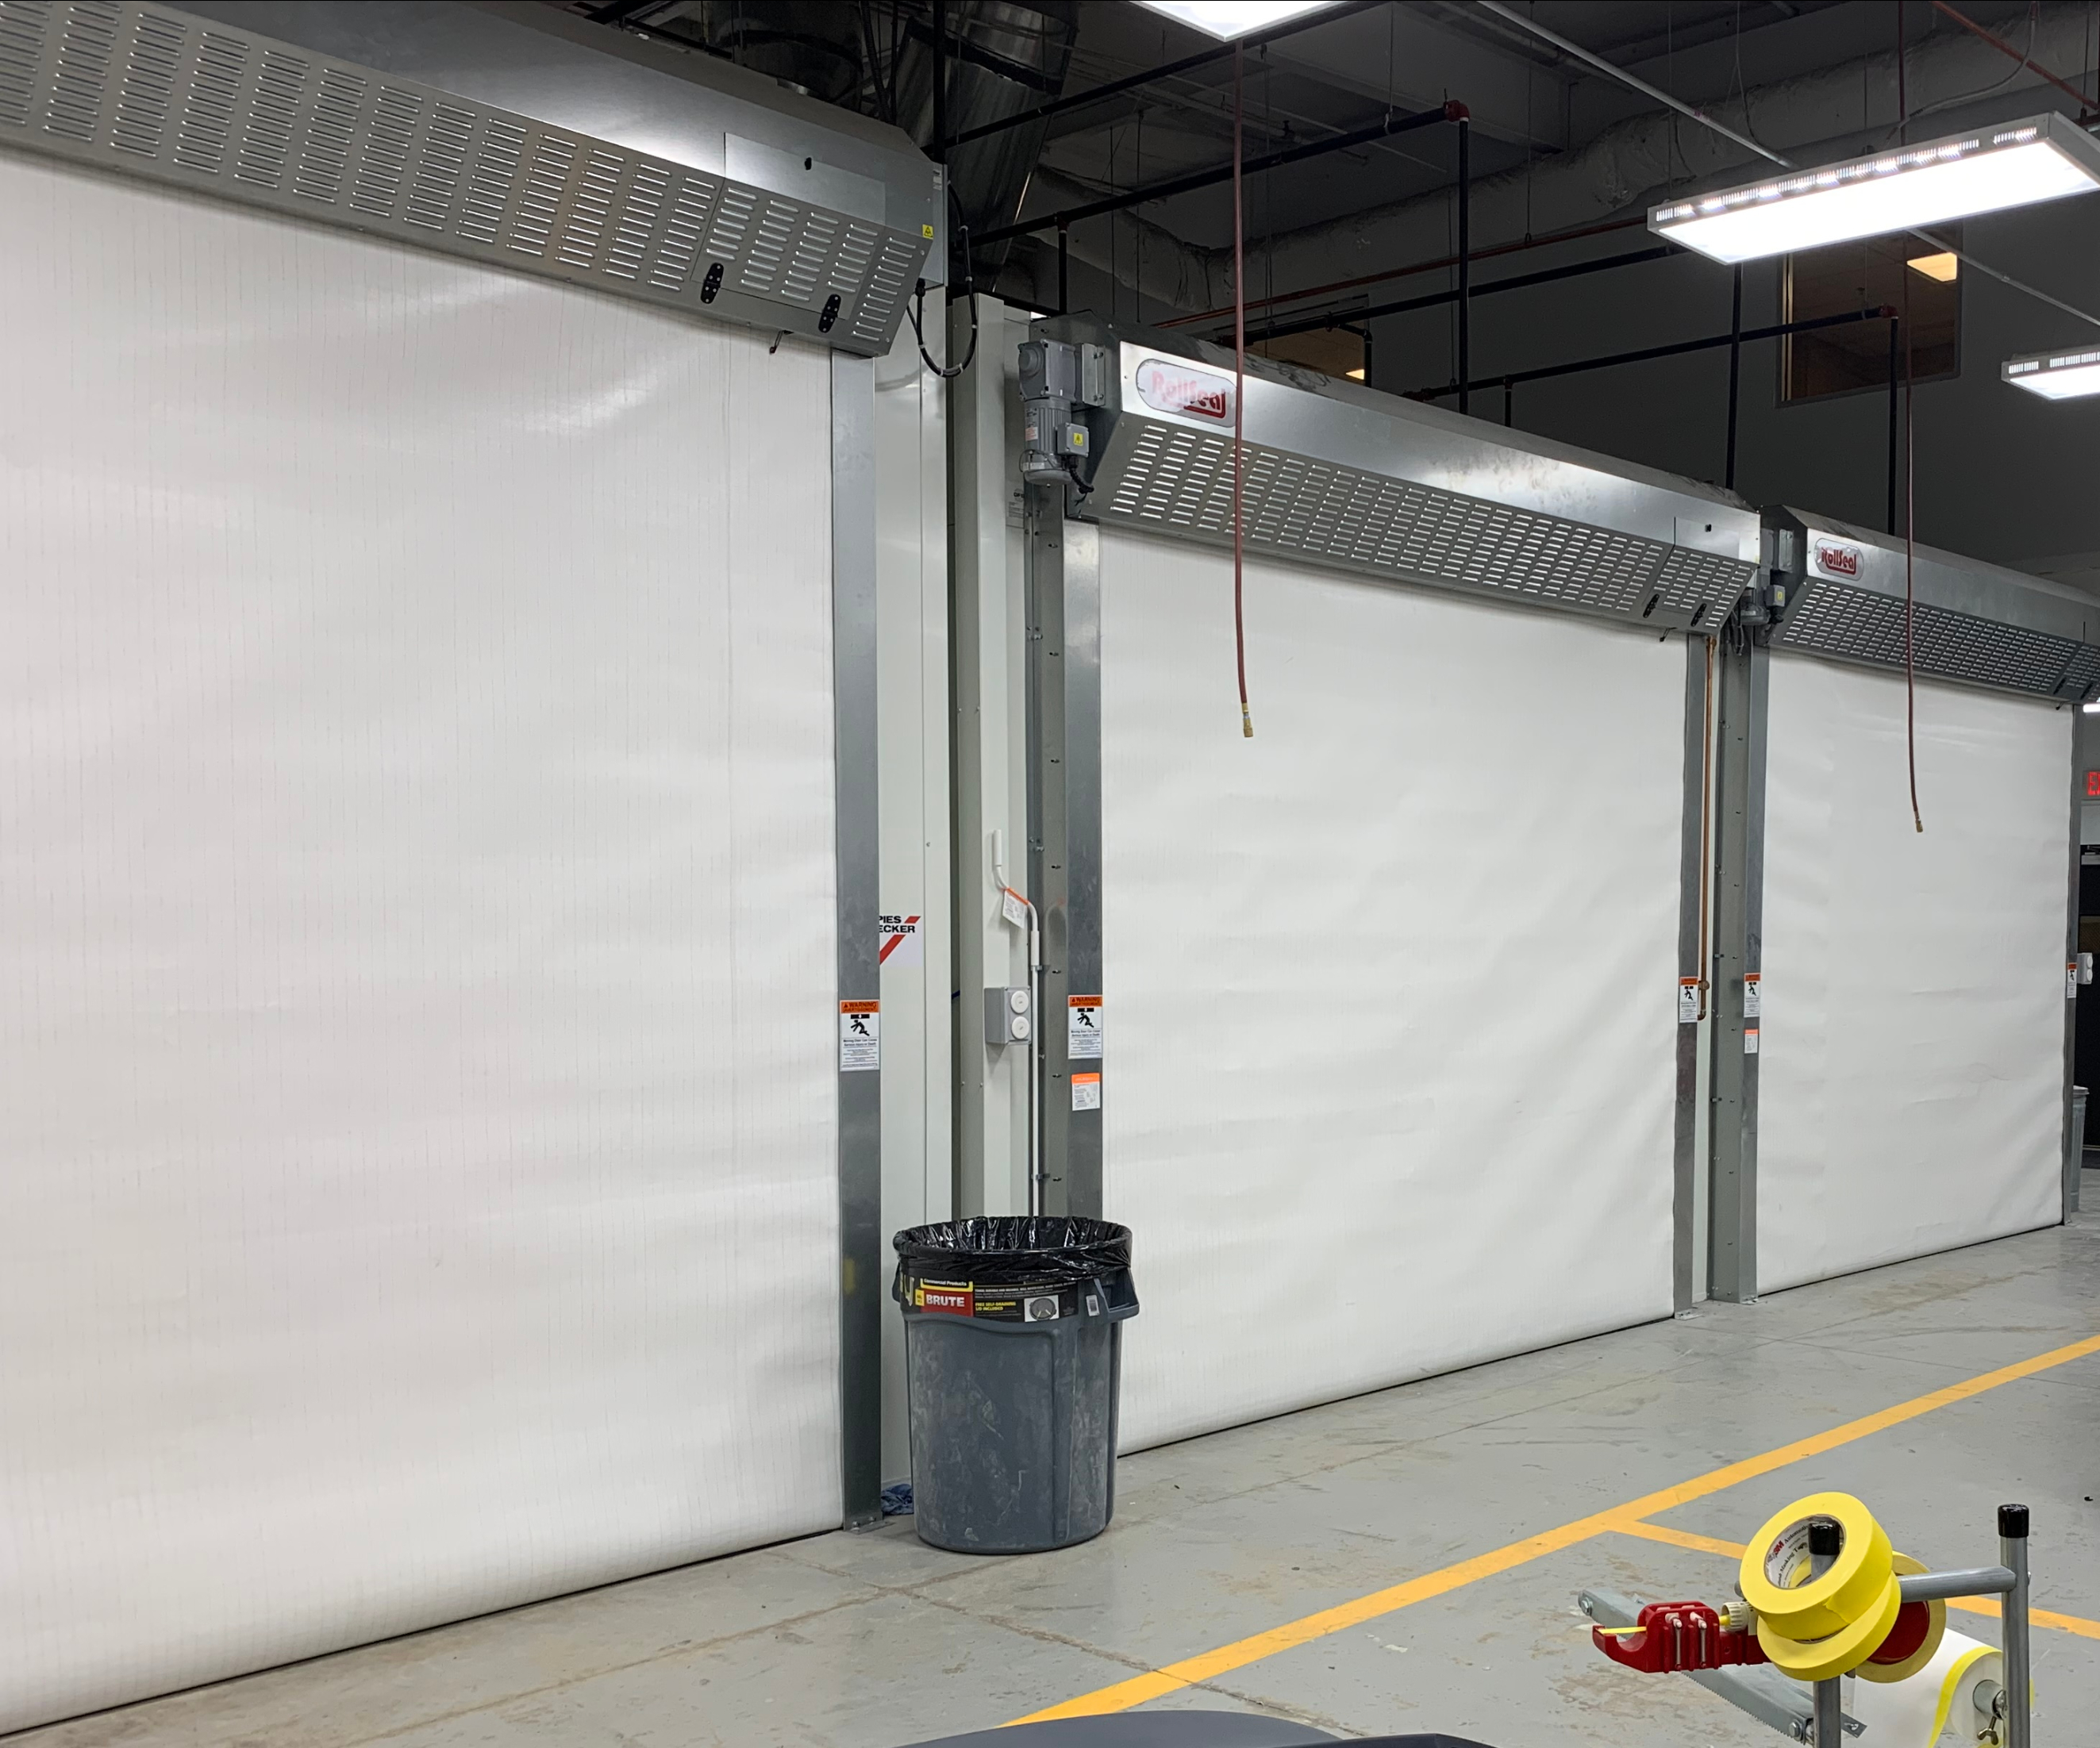 RollSeal Manufactures High-Performance Roll-up Doors